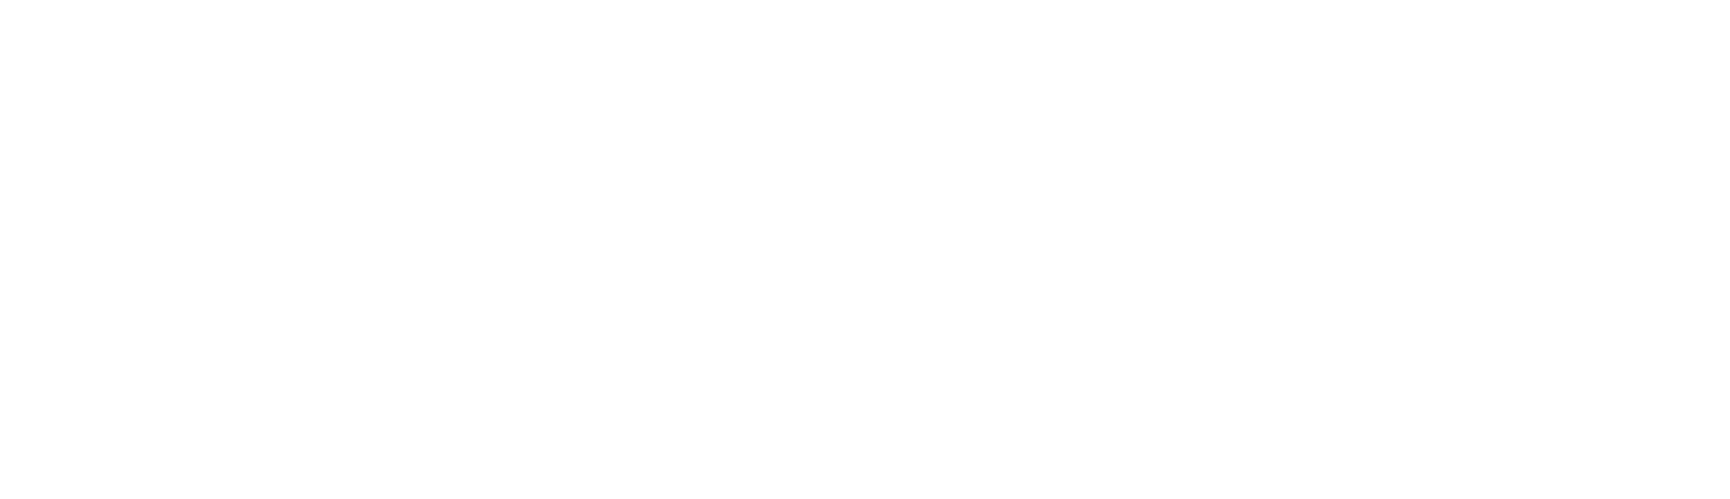 Brad & Monica Wedding Films | Dallas Based International Wedding Videographers